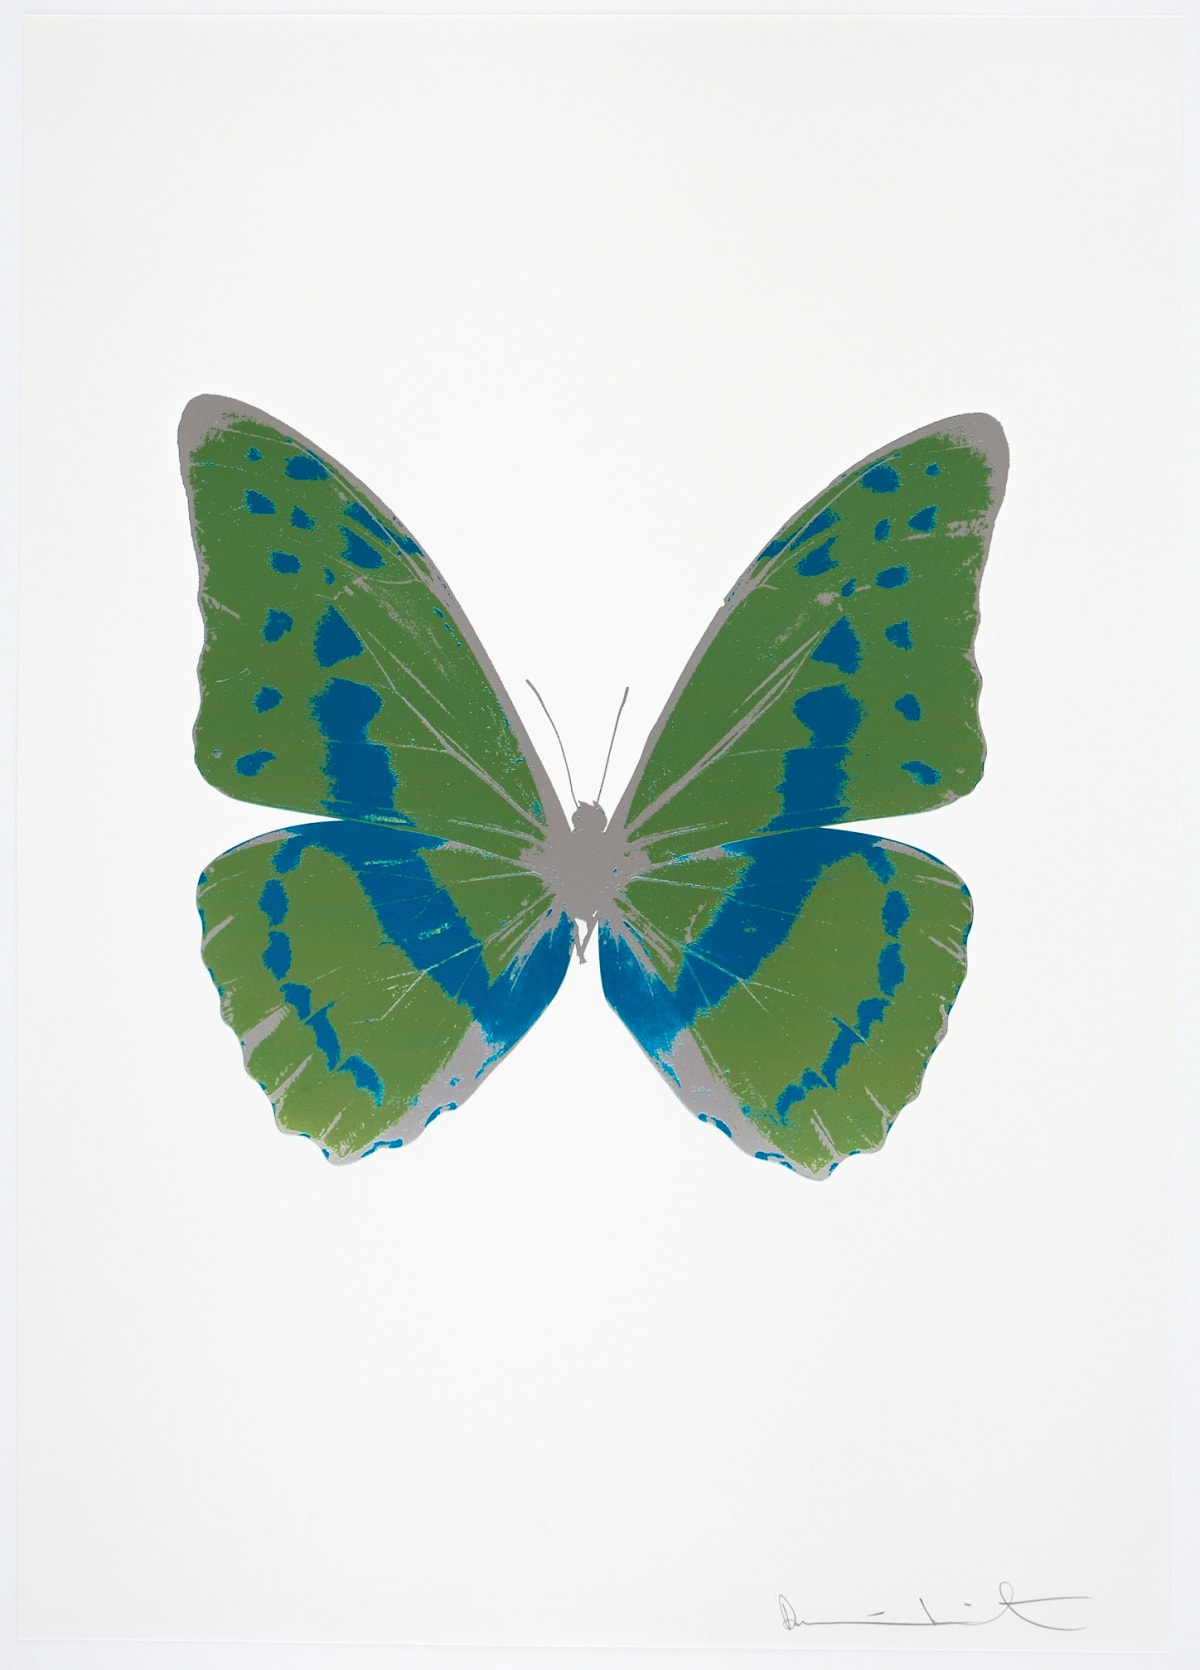 Damien Hirst The Souls III - Leaf Green/Turquoise/Silver Gloss, 2010 3 colour foil block on 300gsm Arches 88 archival paper. Signed and numbered. Published by Paul Stolper and Other Criteria 72 x 51cm OC7928 / 660-31 Edition of 15